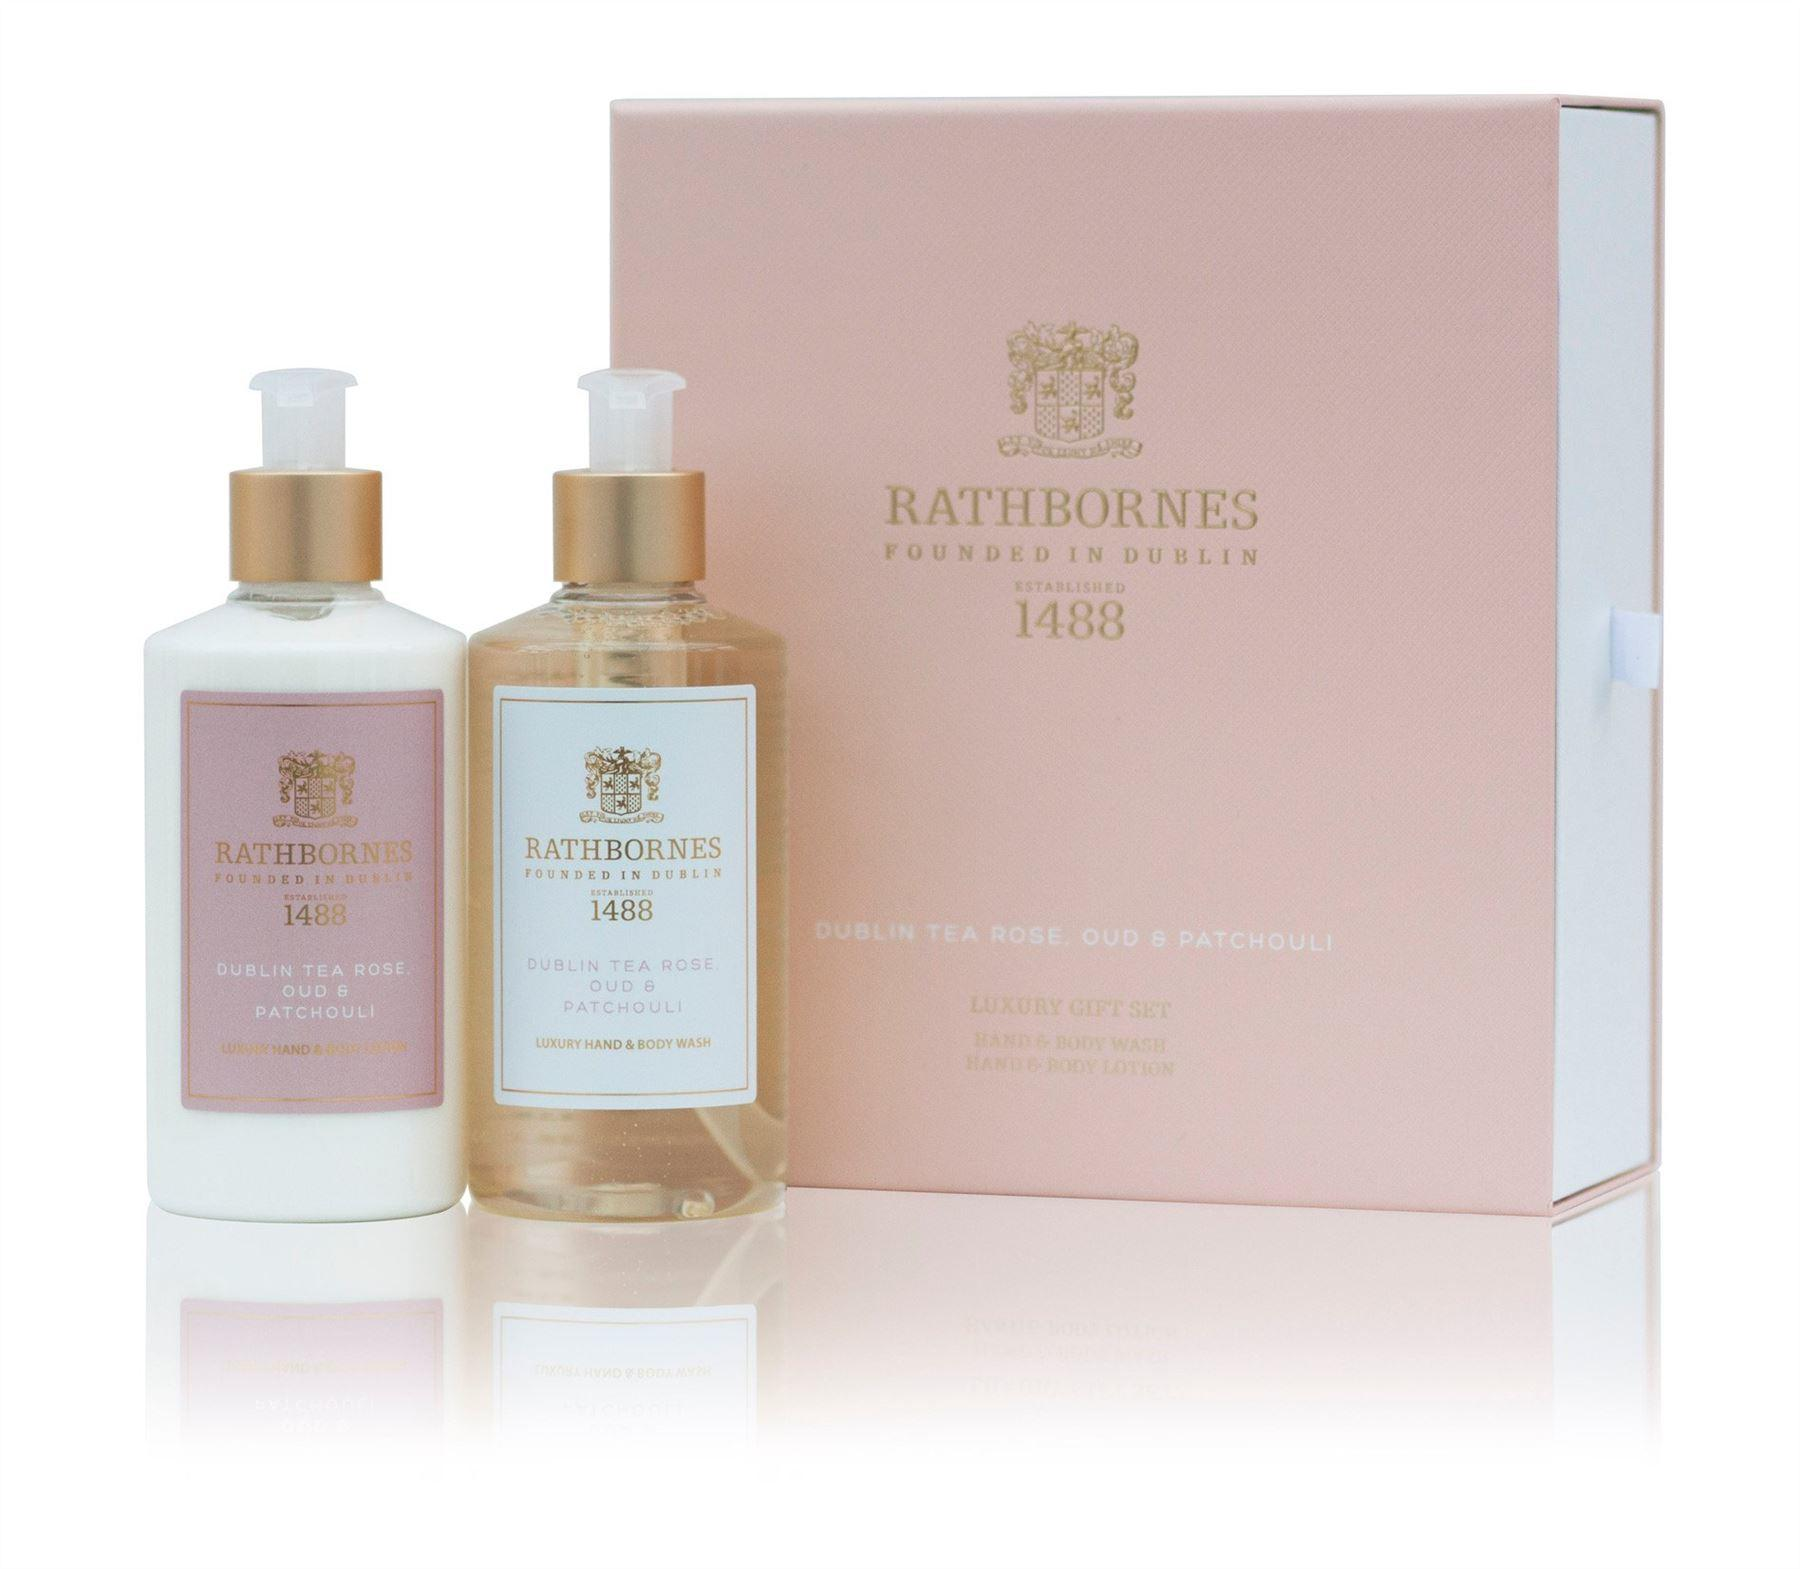 Rathbornes 1488 Dublin Tea Rose Hand & Body Gift Set (Hand/Body Wash & Lotion)